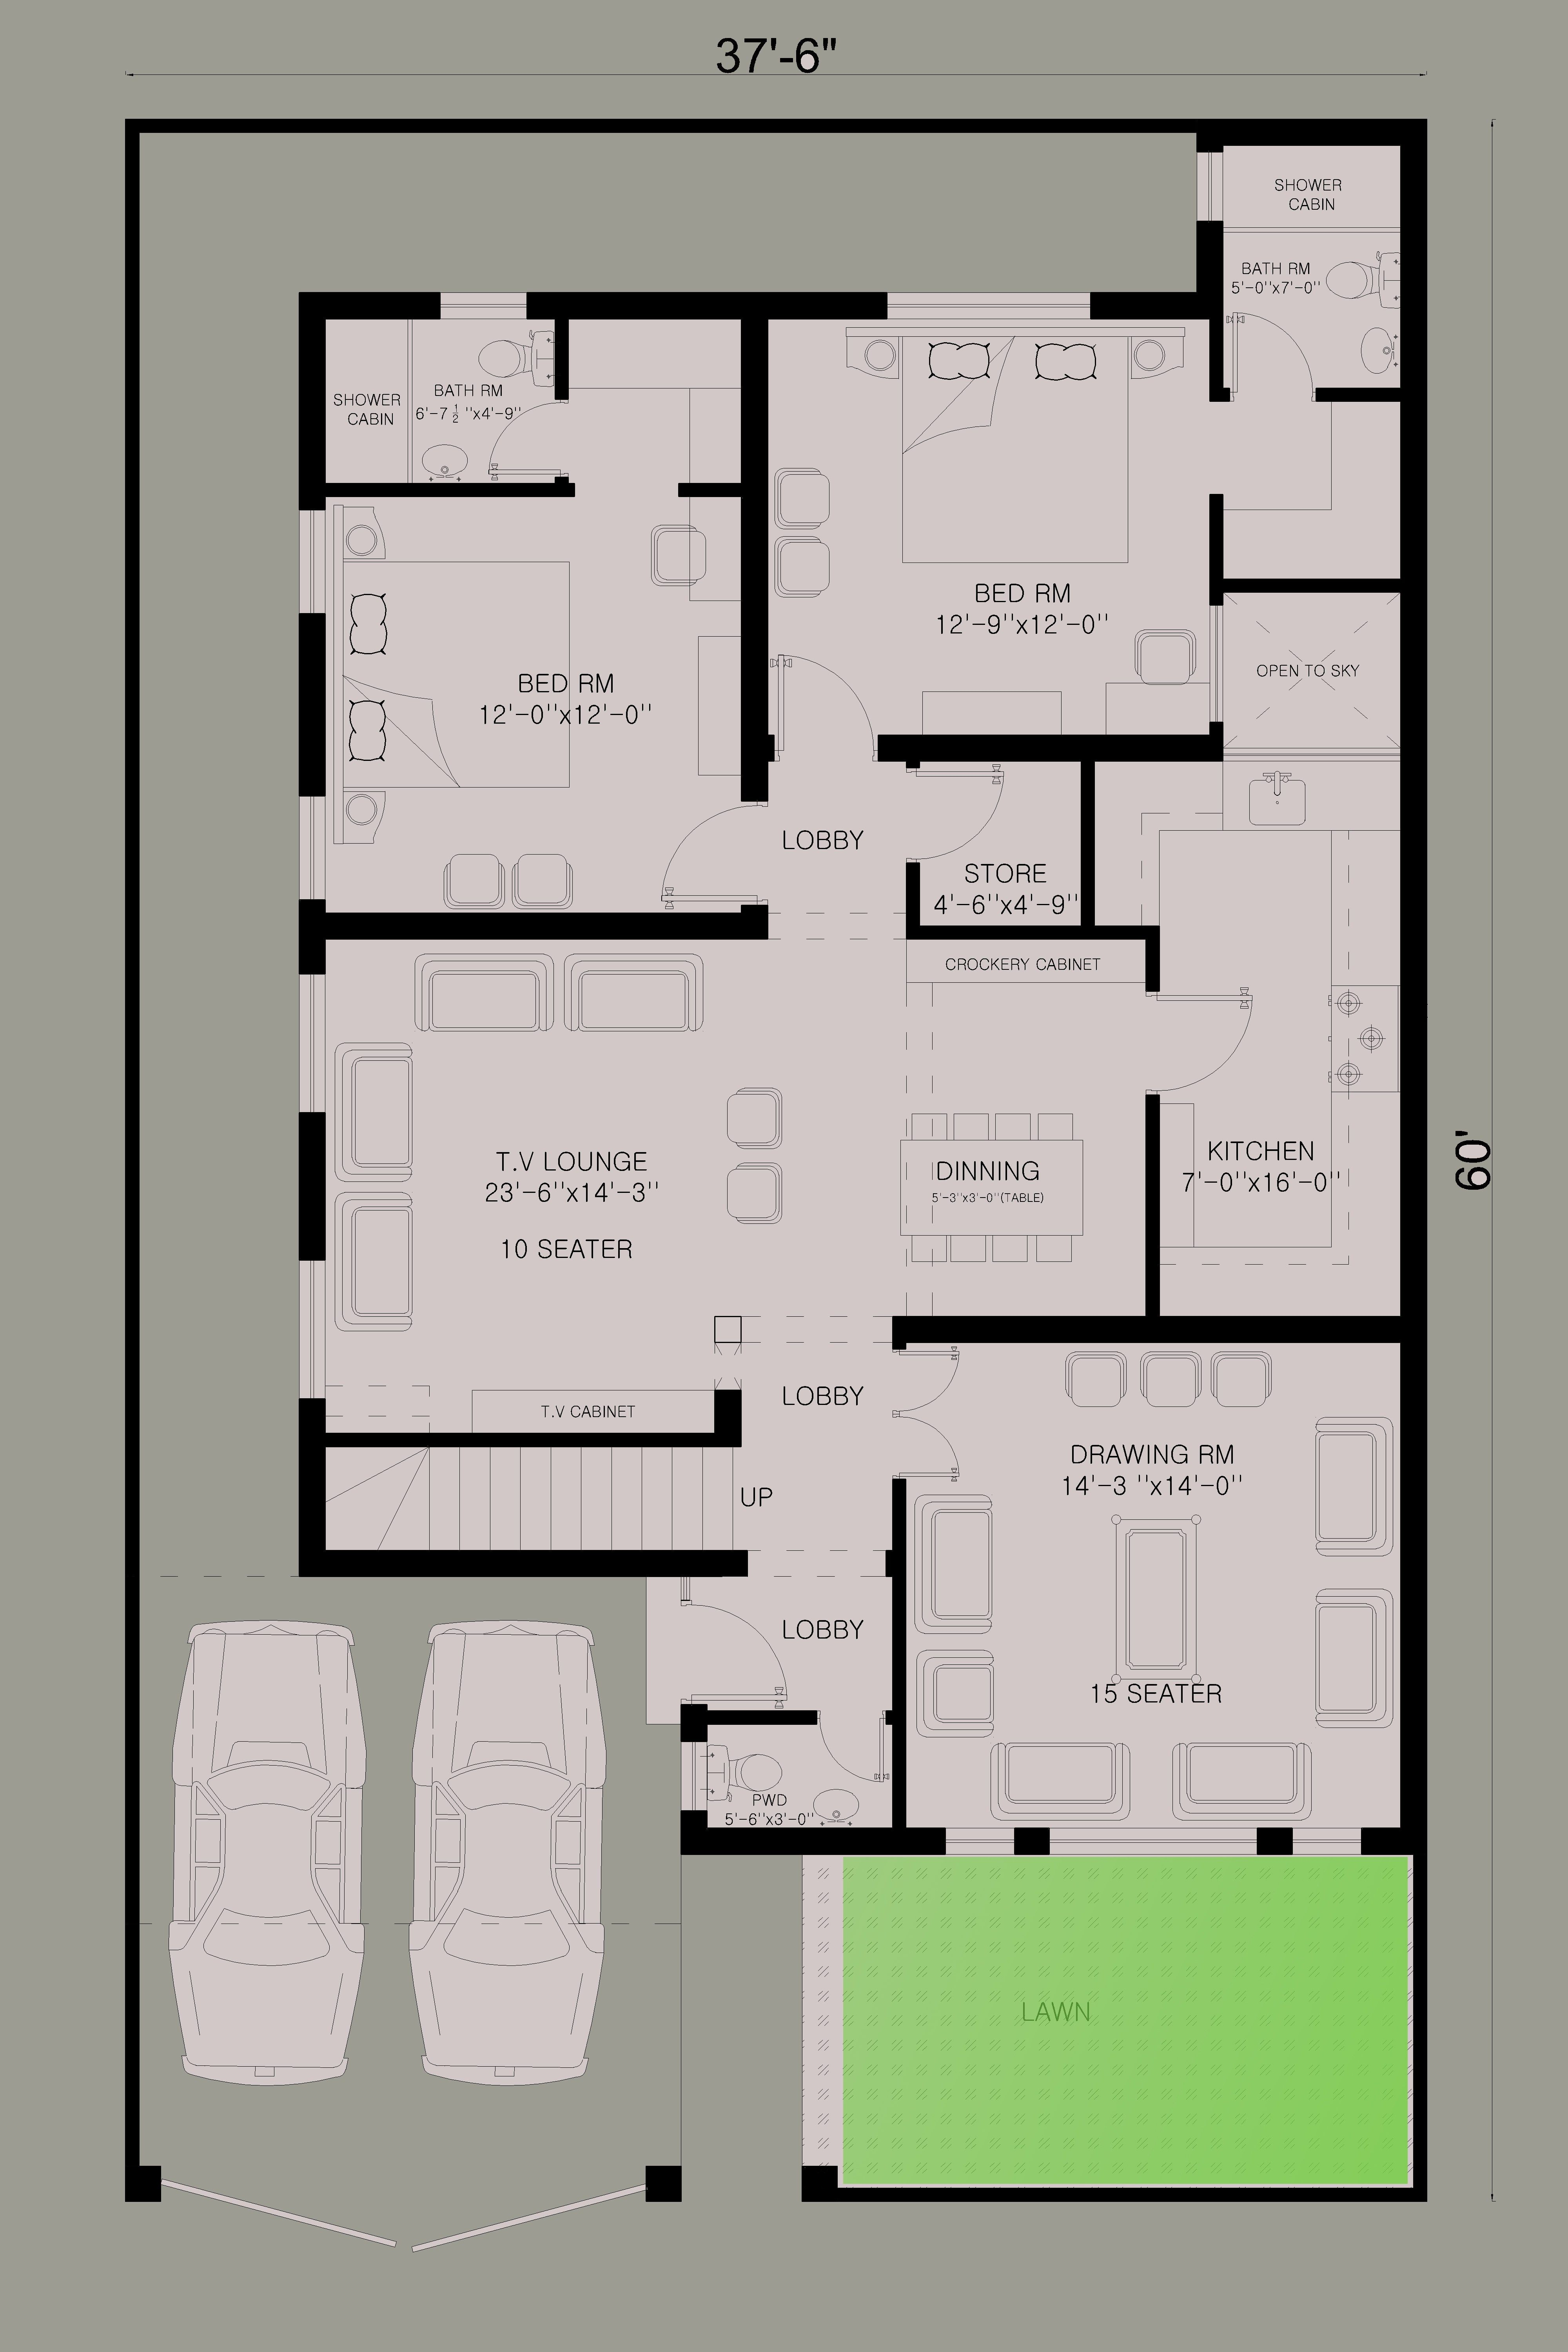 10 marla house layout | house plans and ideas | pinterest | house